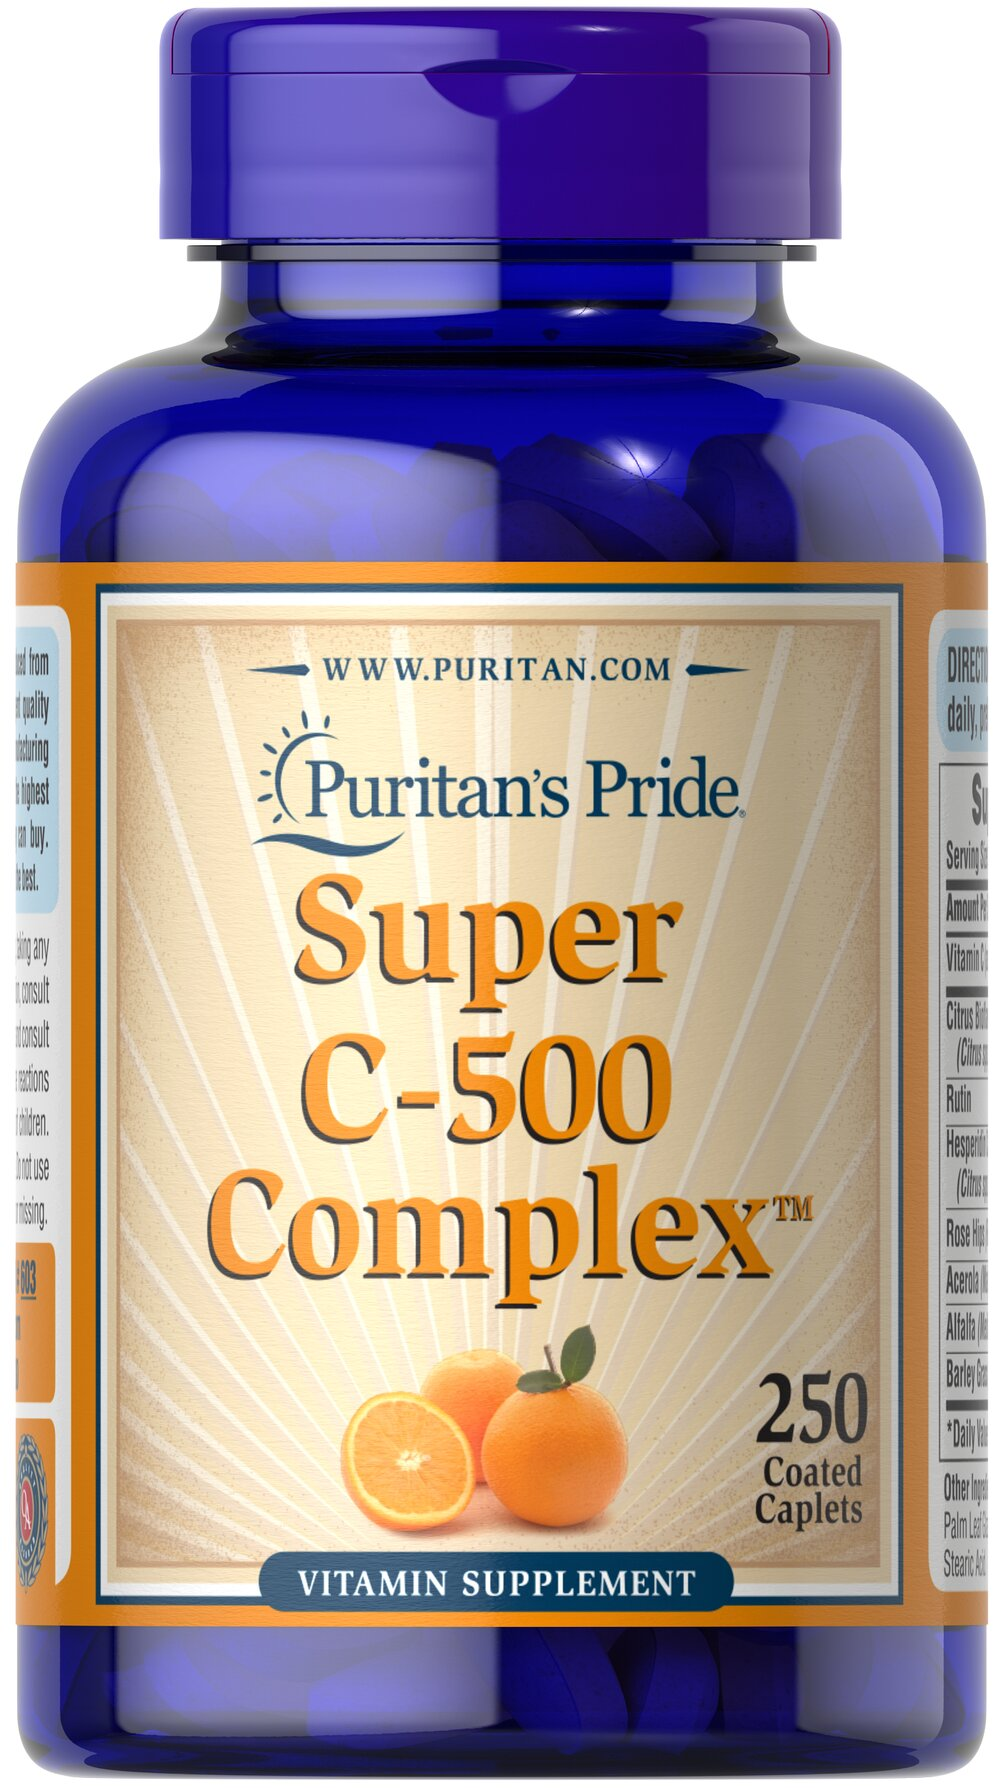 Vitamin C-500 Complex  250 Coated Caplets 500 mg $25.19